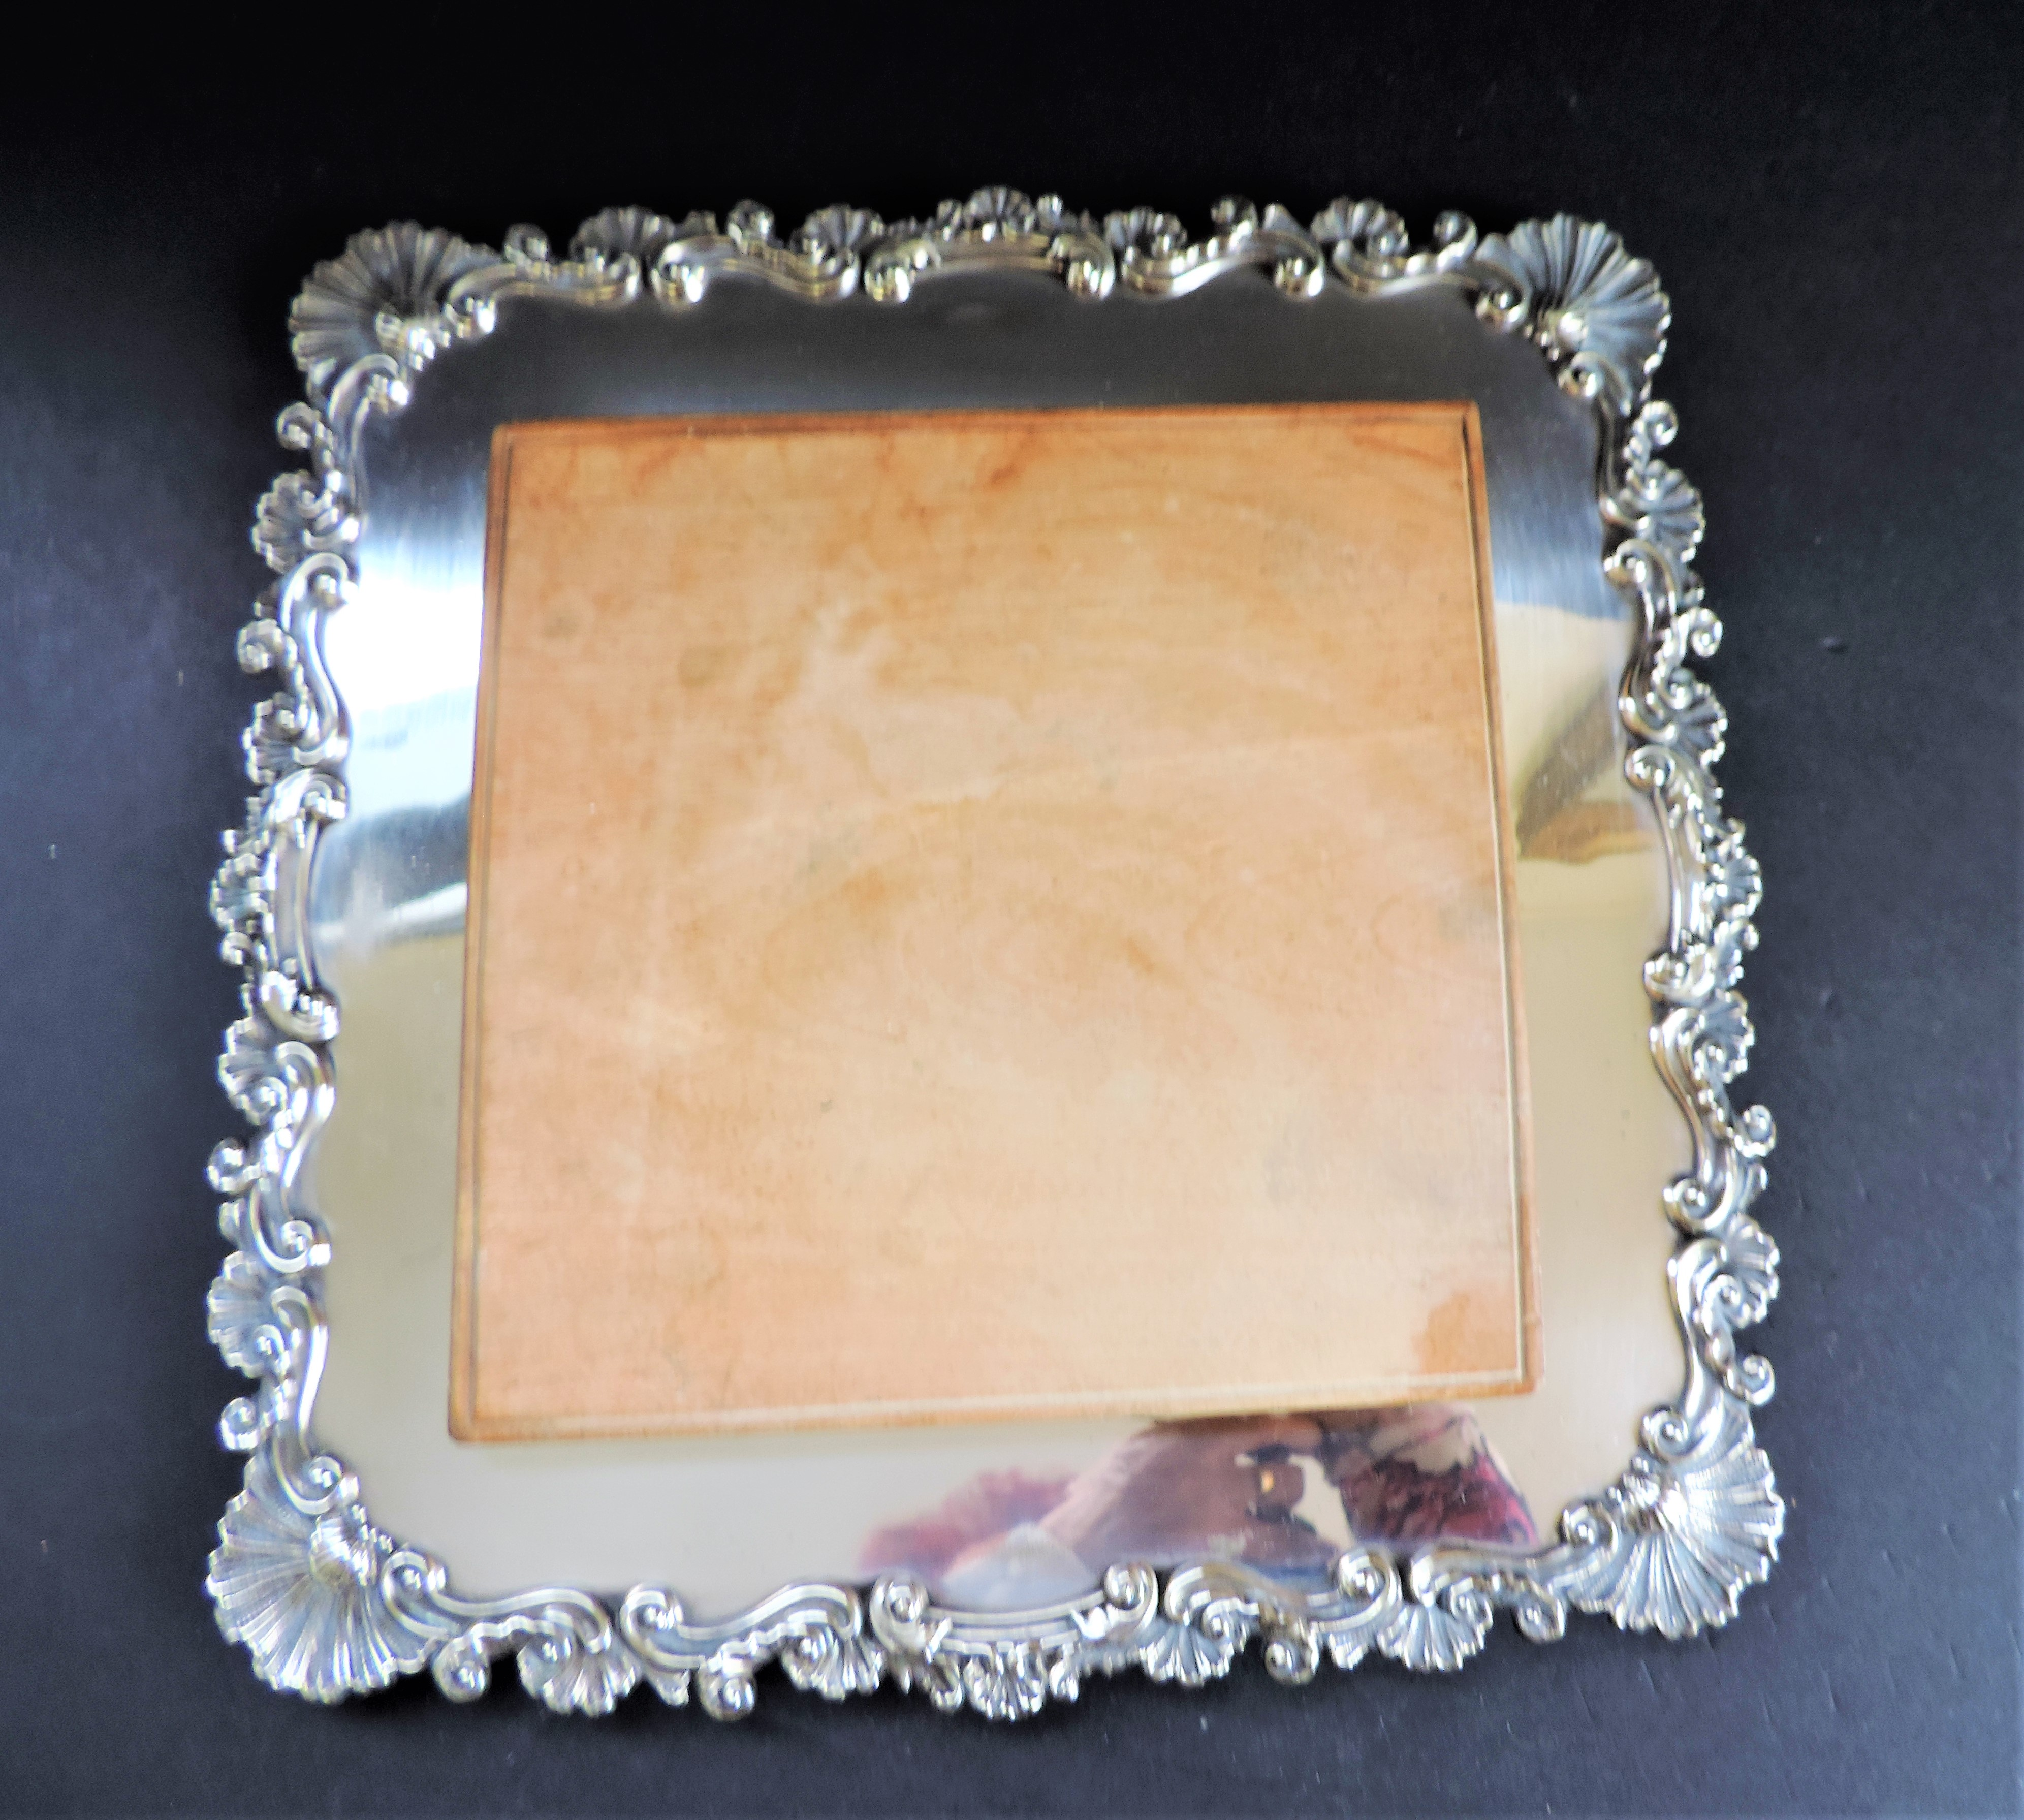 Antique Victorian Silver Plated Bread/Cheese Board Serving Set - Image 4 of 6